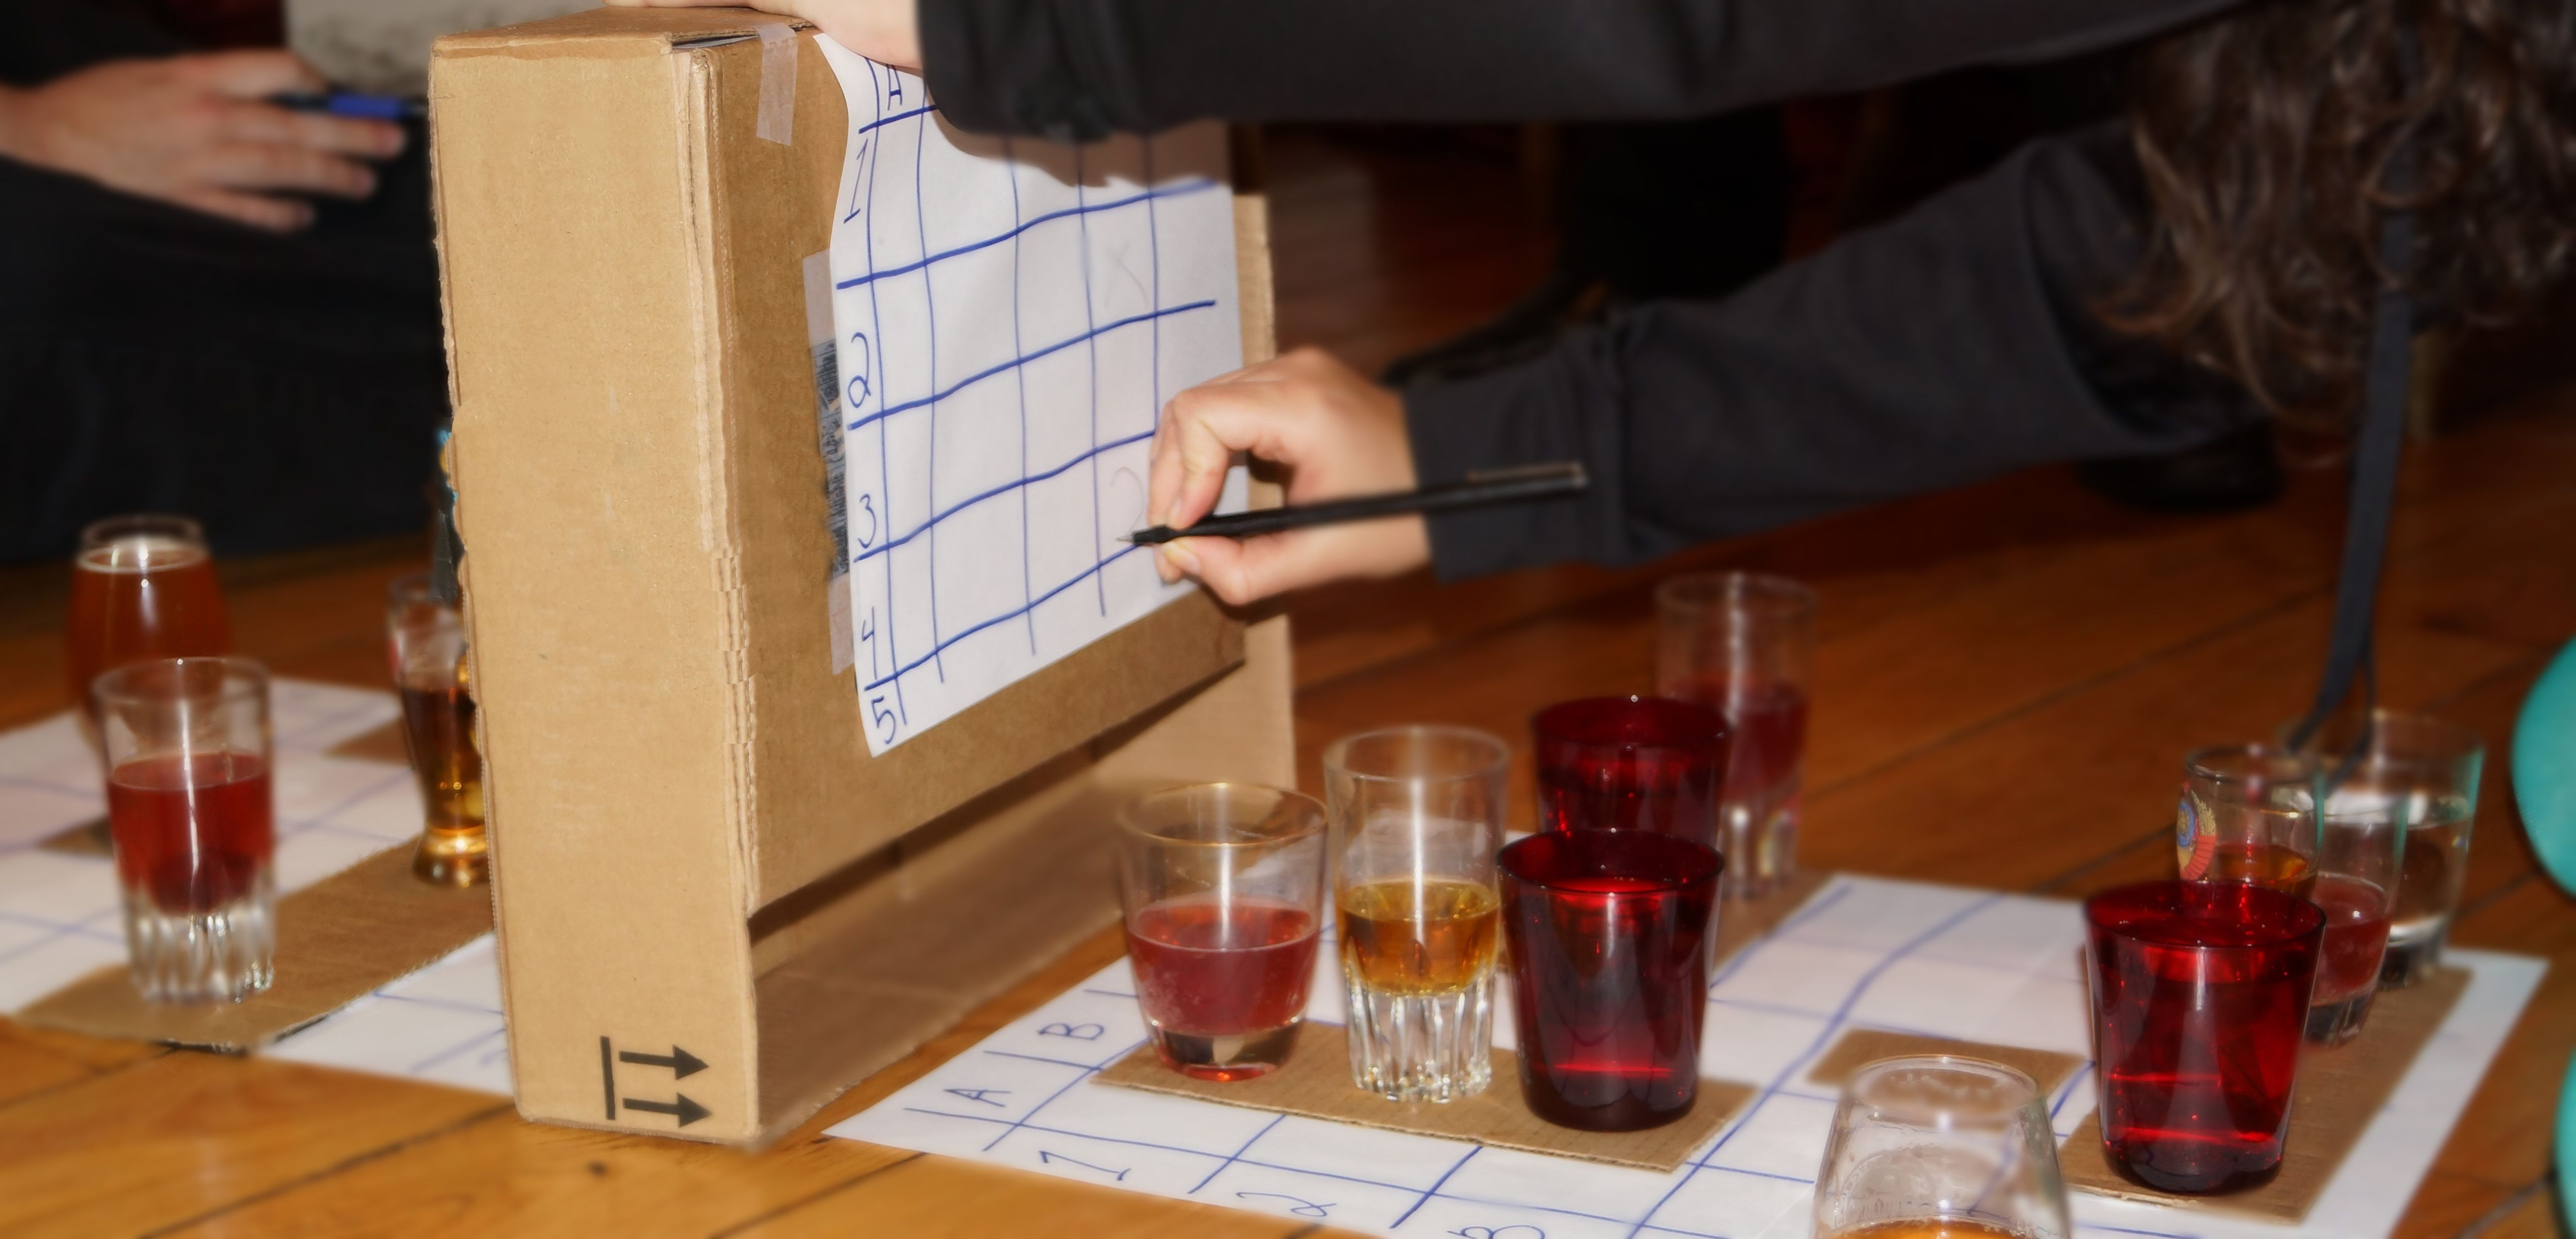 drinking games without cards for couples